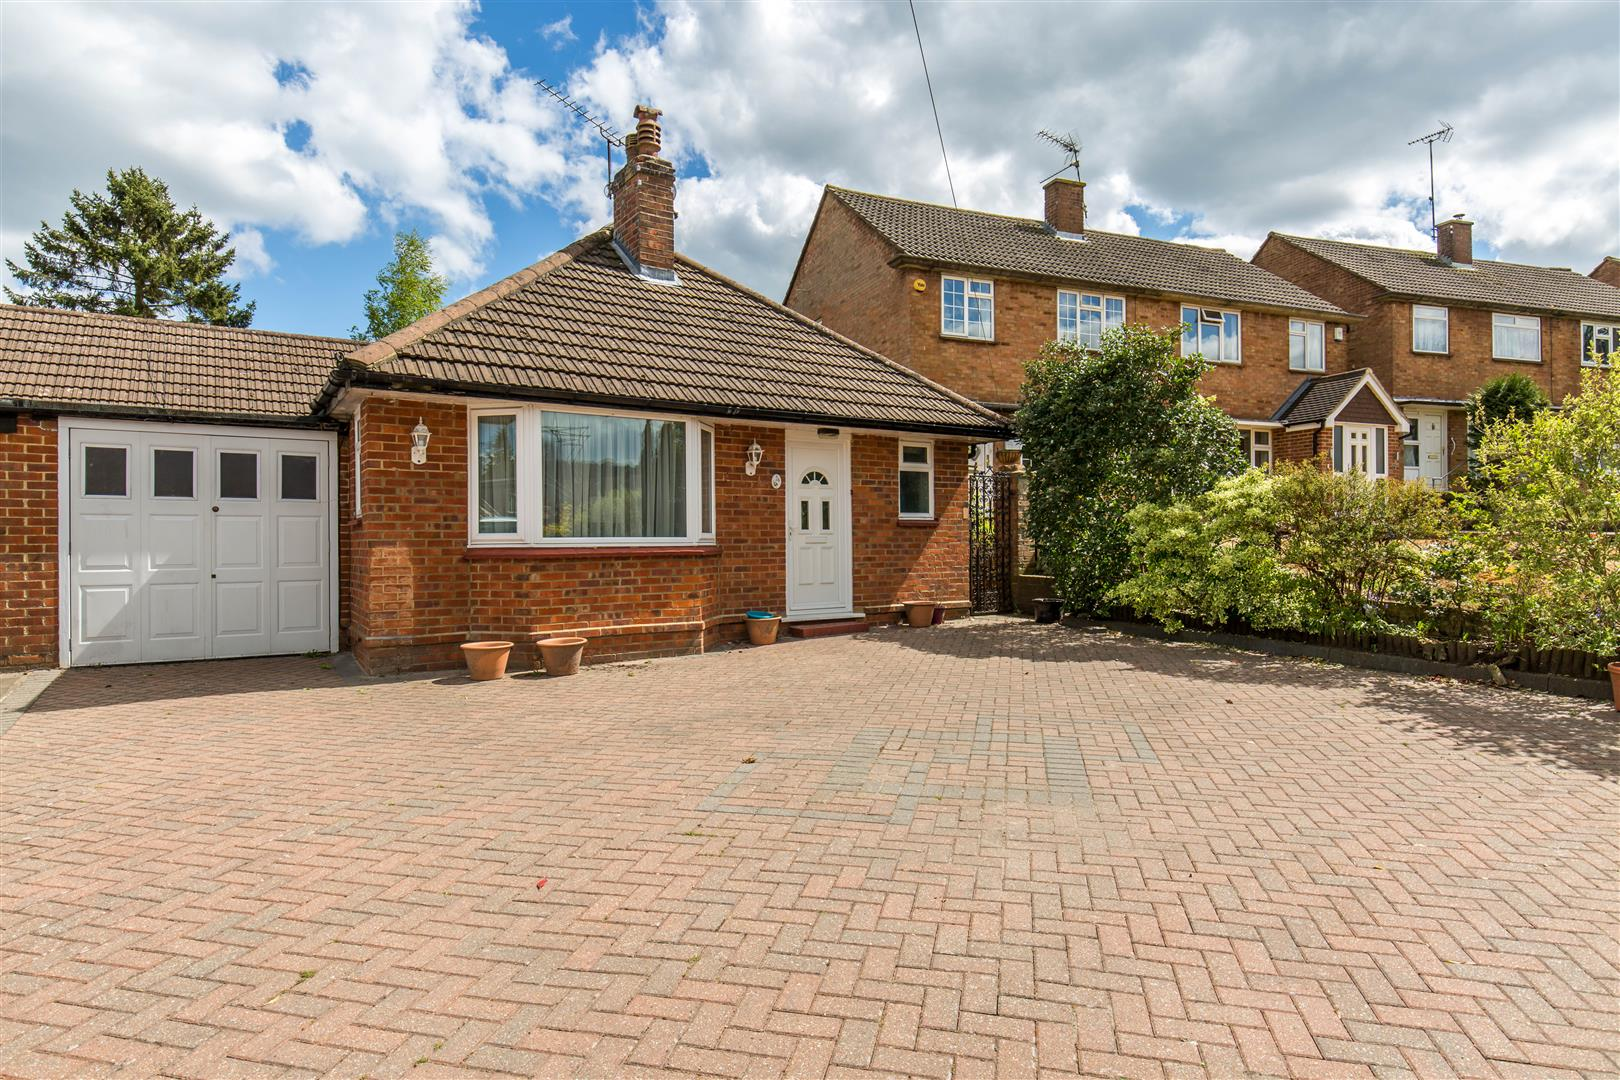 2 Bedrooms Bungalow for sale in Croydon Road, Westerham